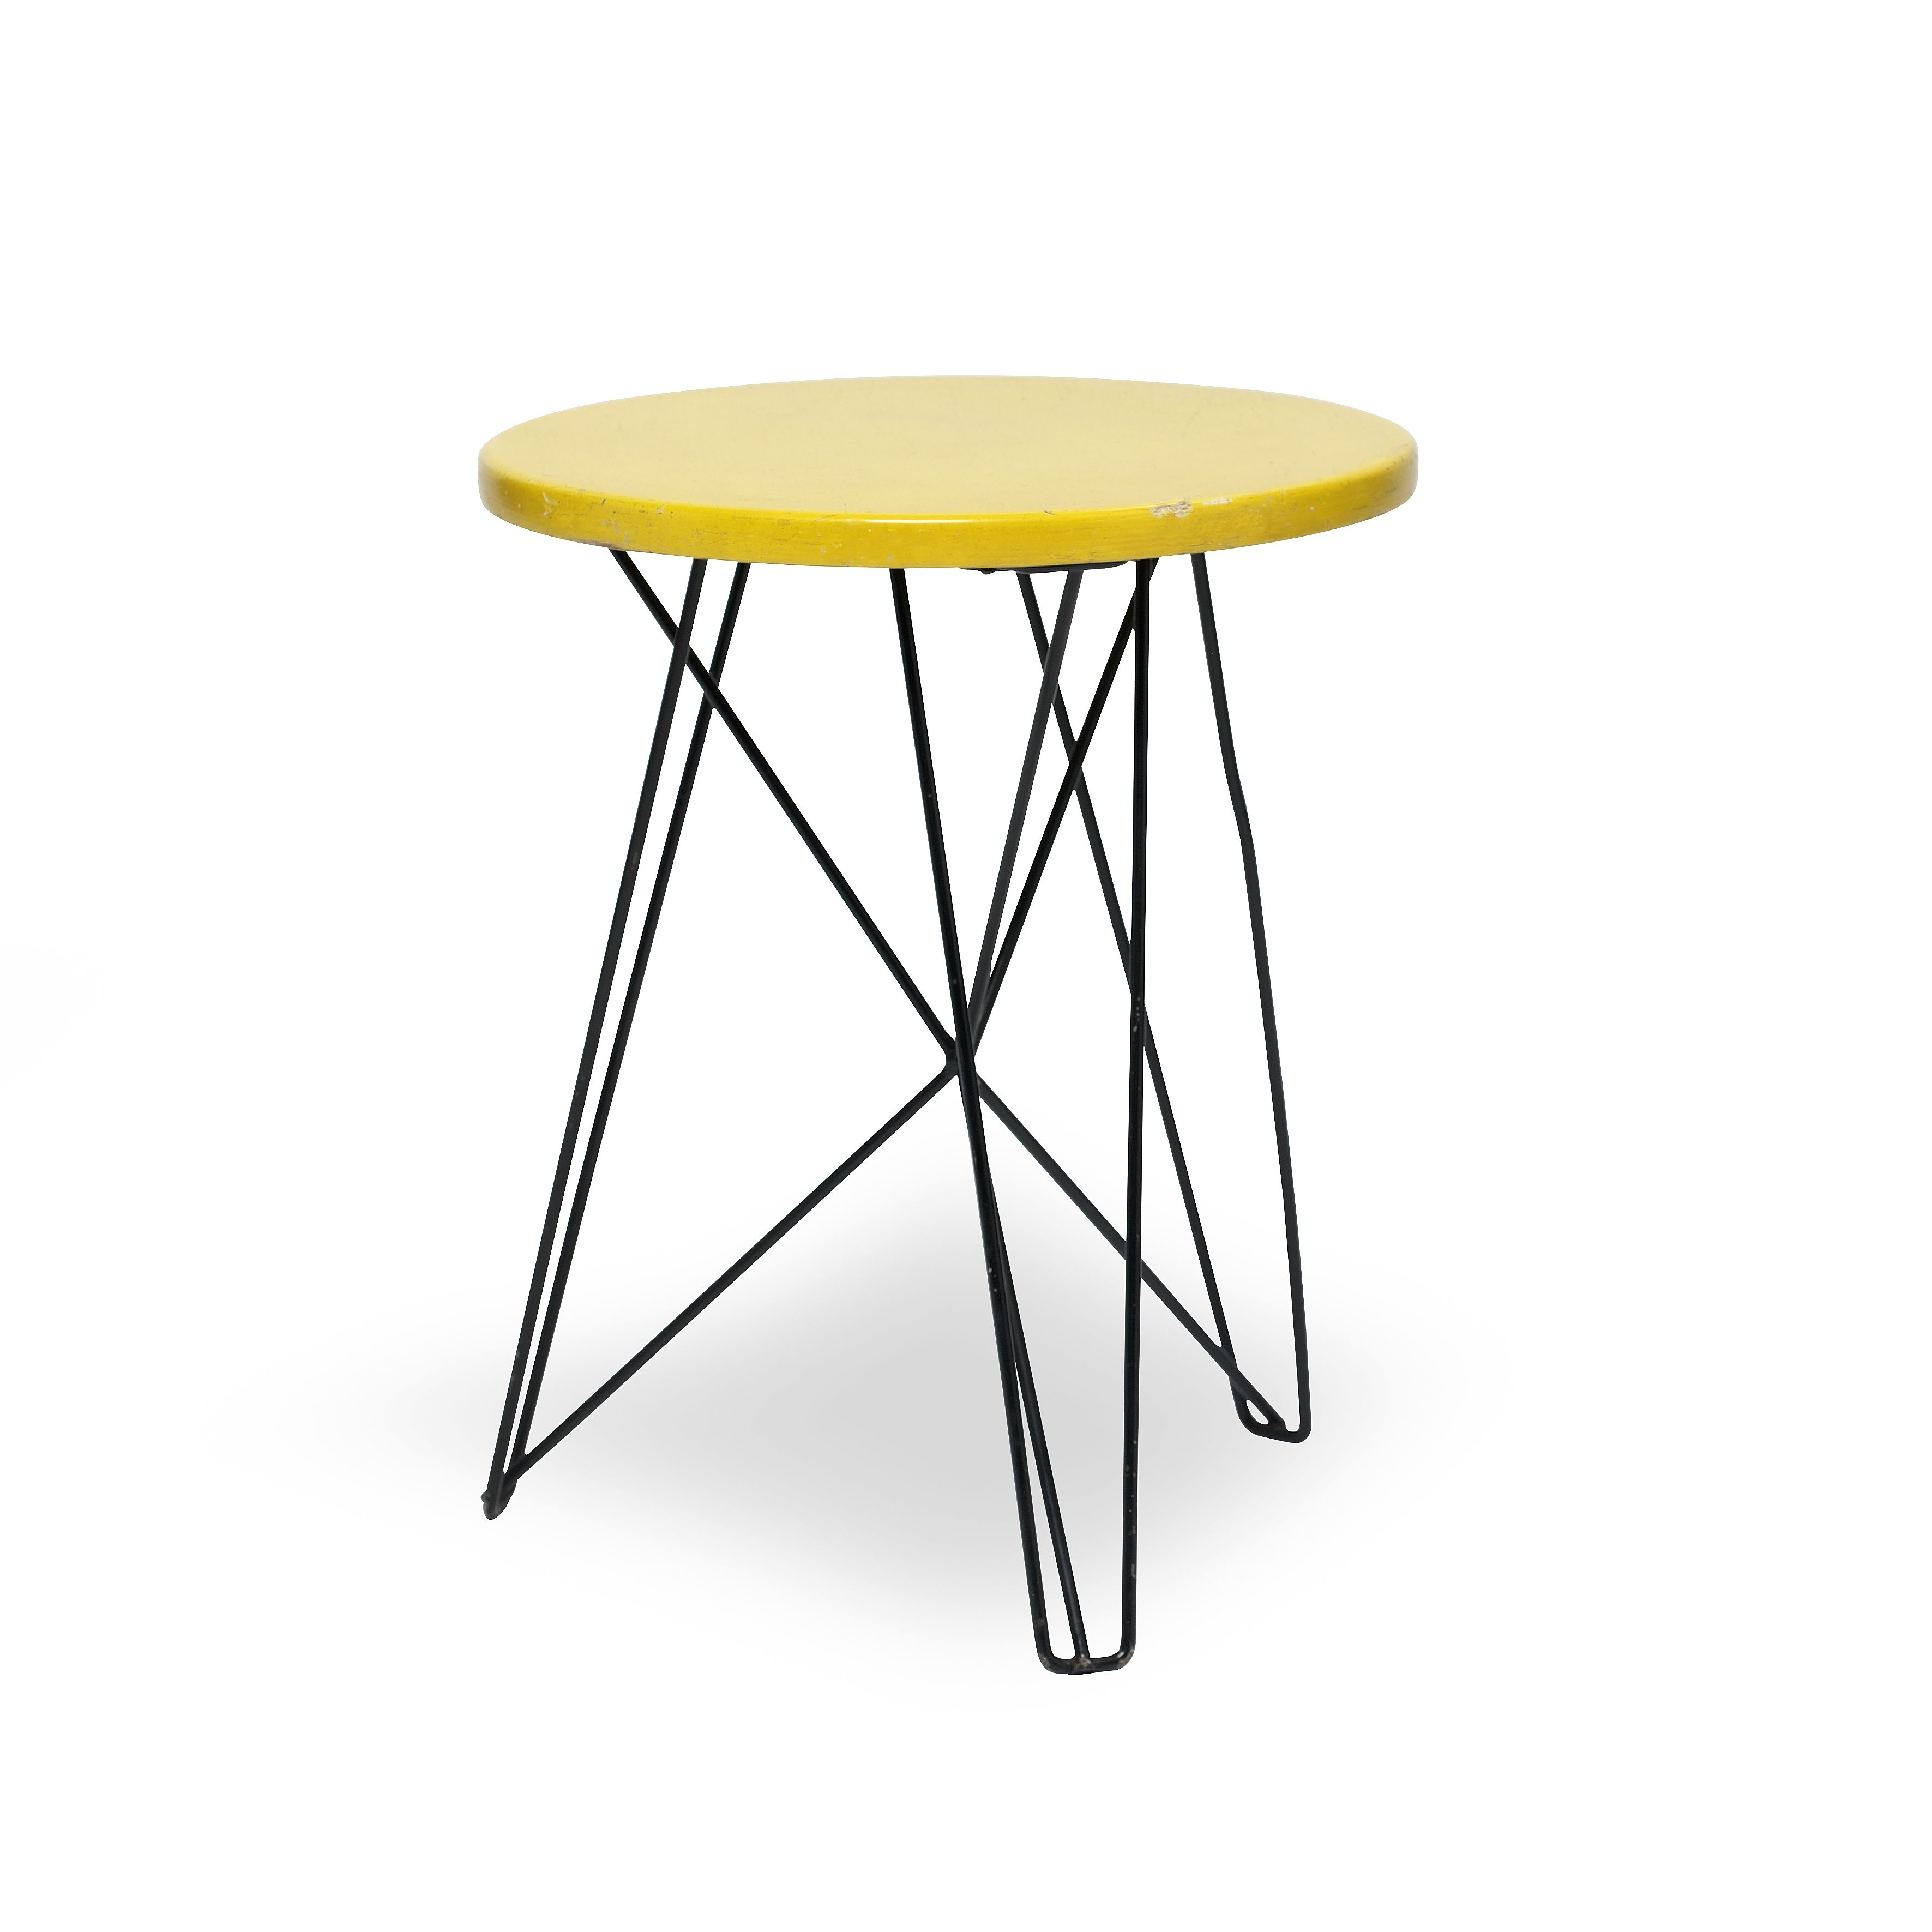 IJhorst side table stool Design Constant Nieuwenhuys 1953 for